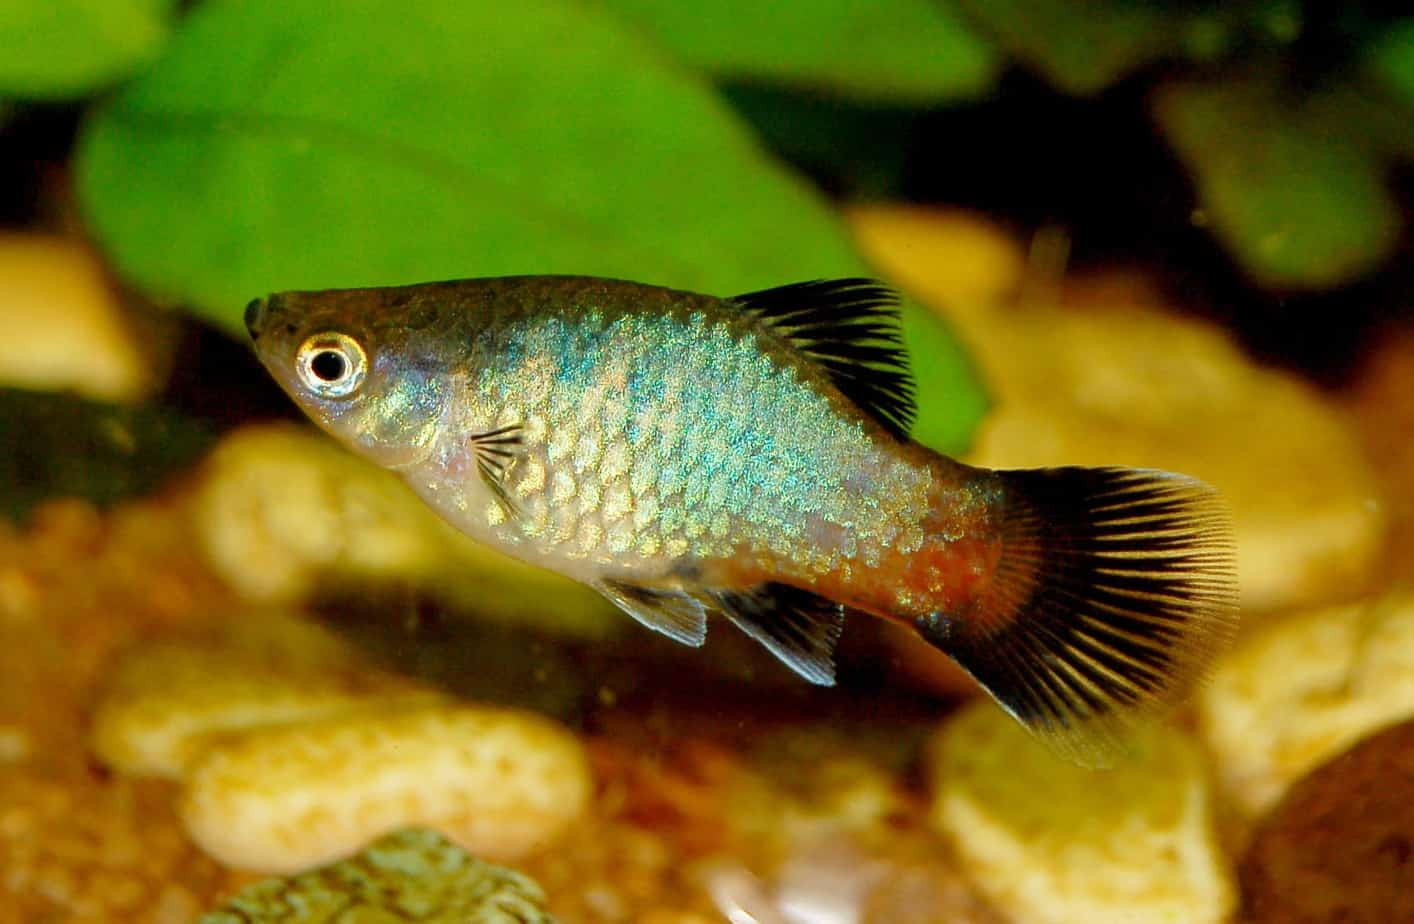 Freshwater aquarium fish list species - Platies